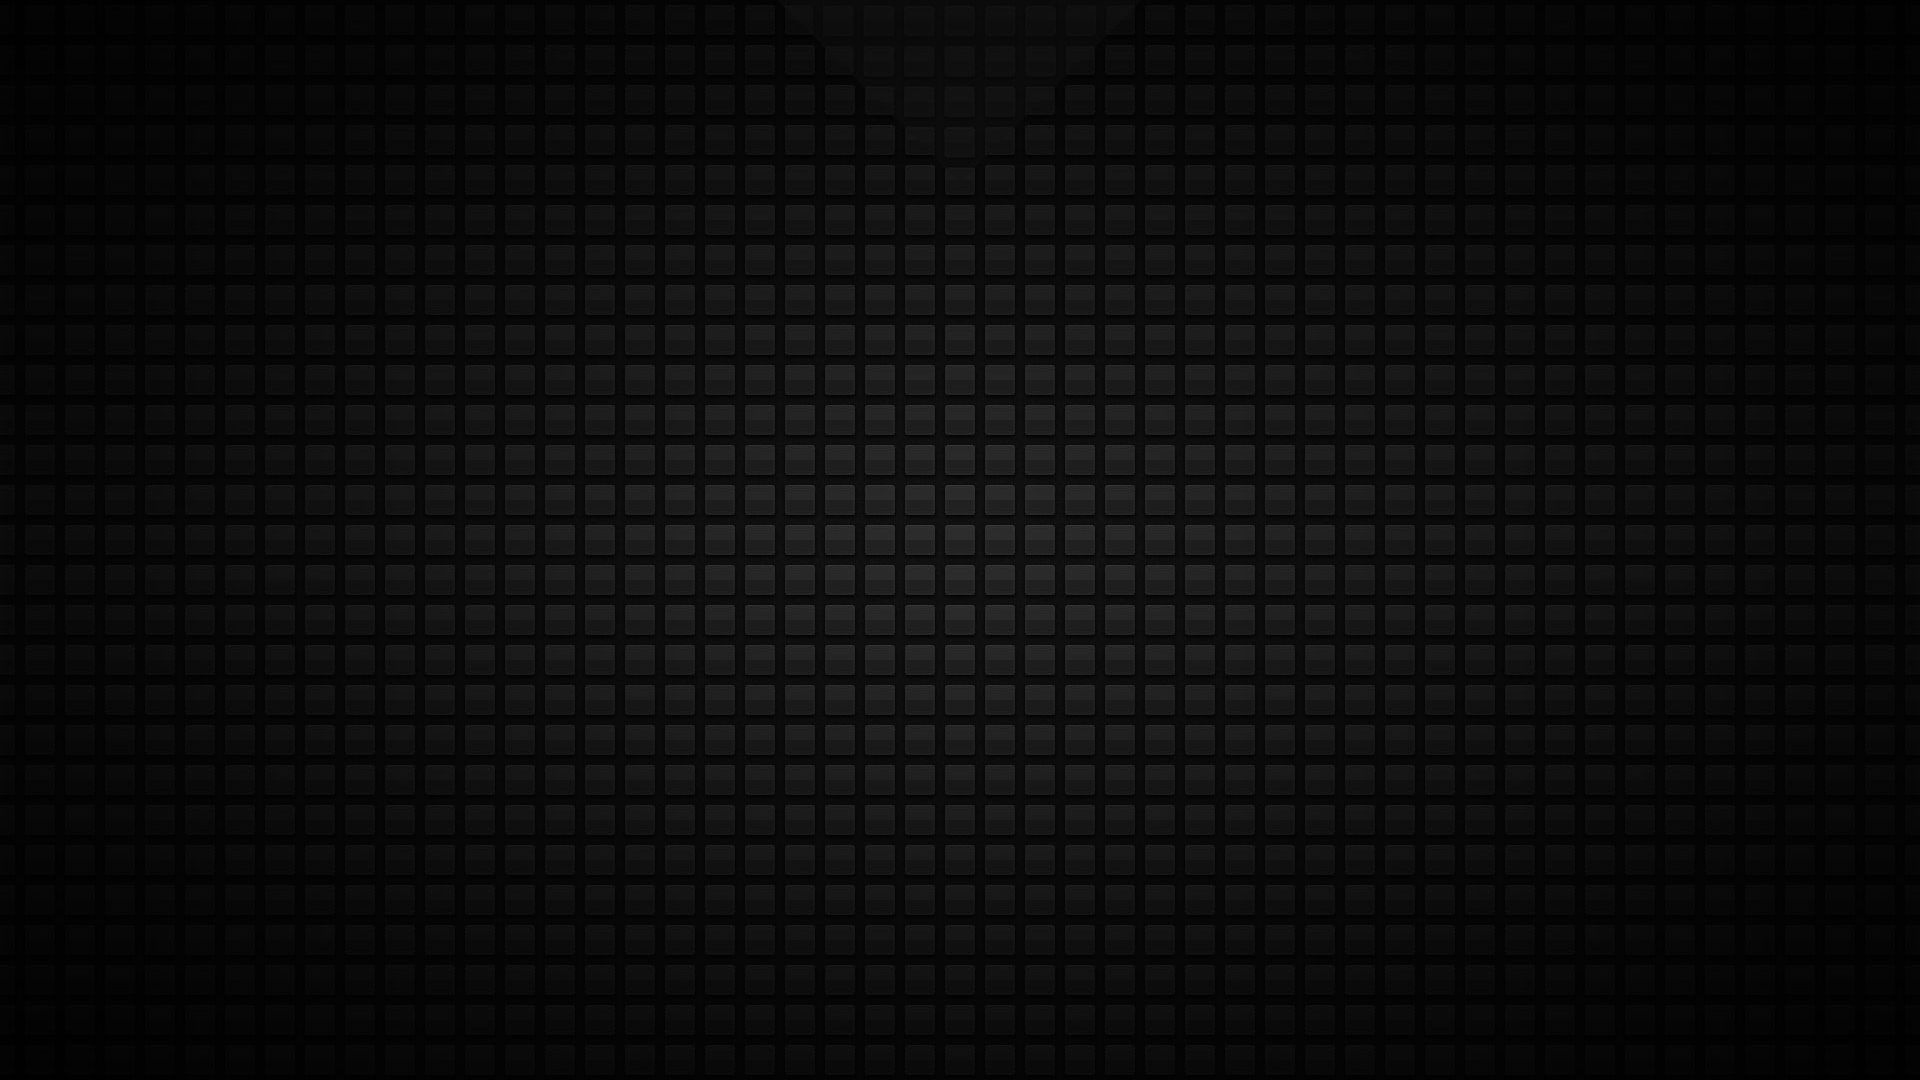 Dark Grey Square Pattern WallpaperMixHD wallpapers 347